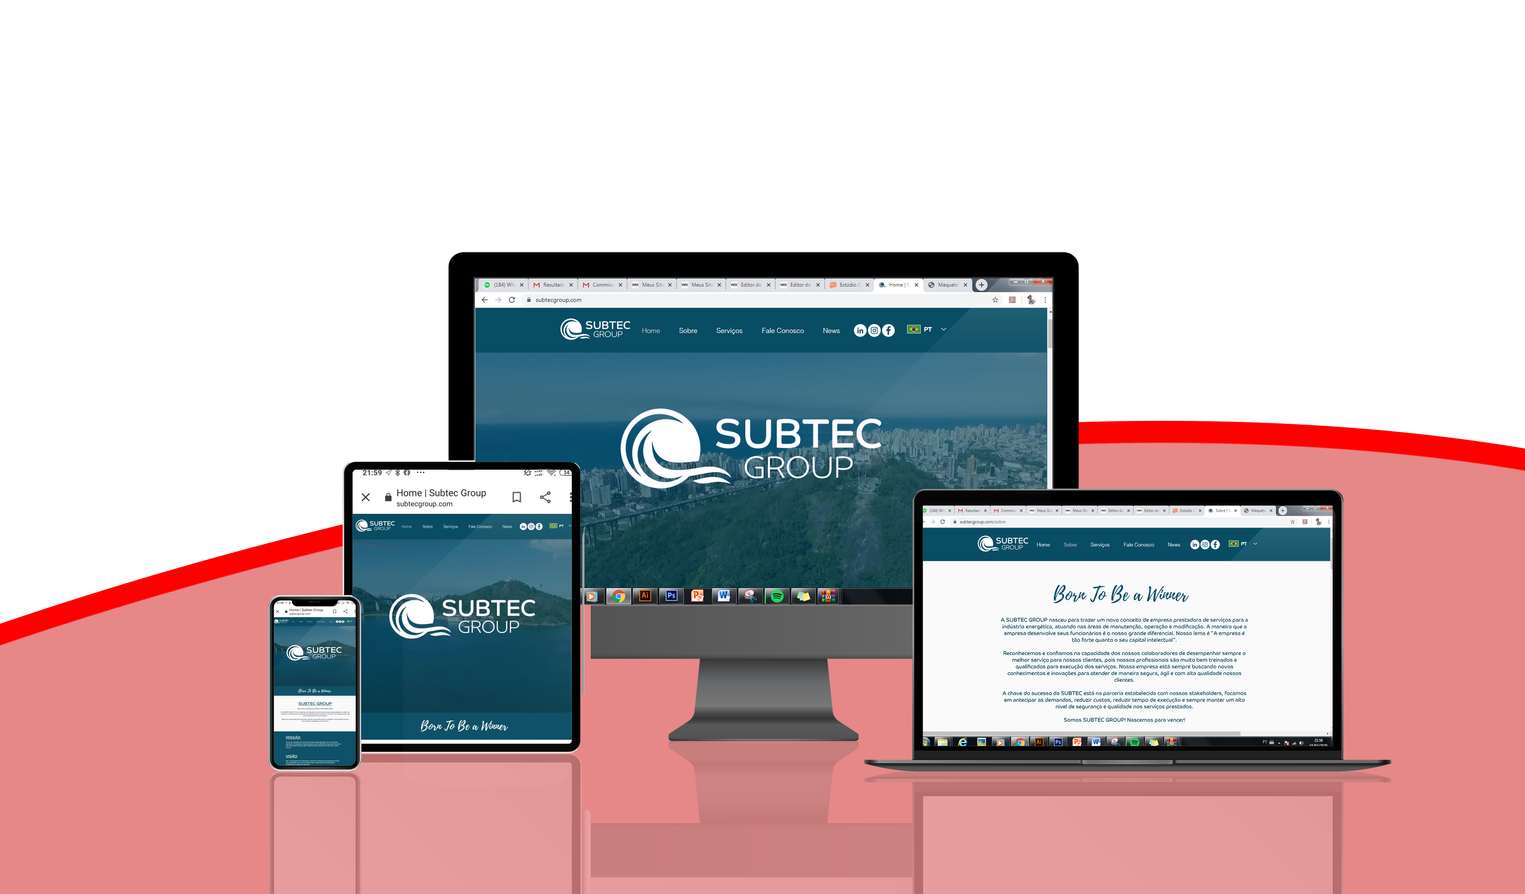 SUBTEC GROUP